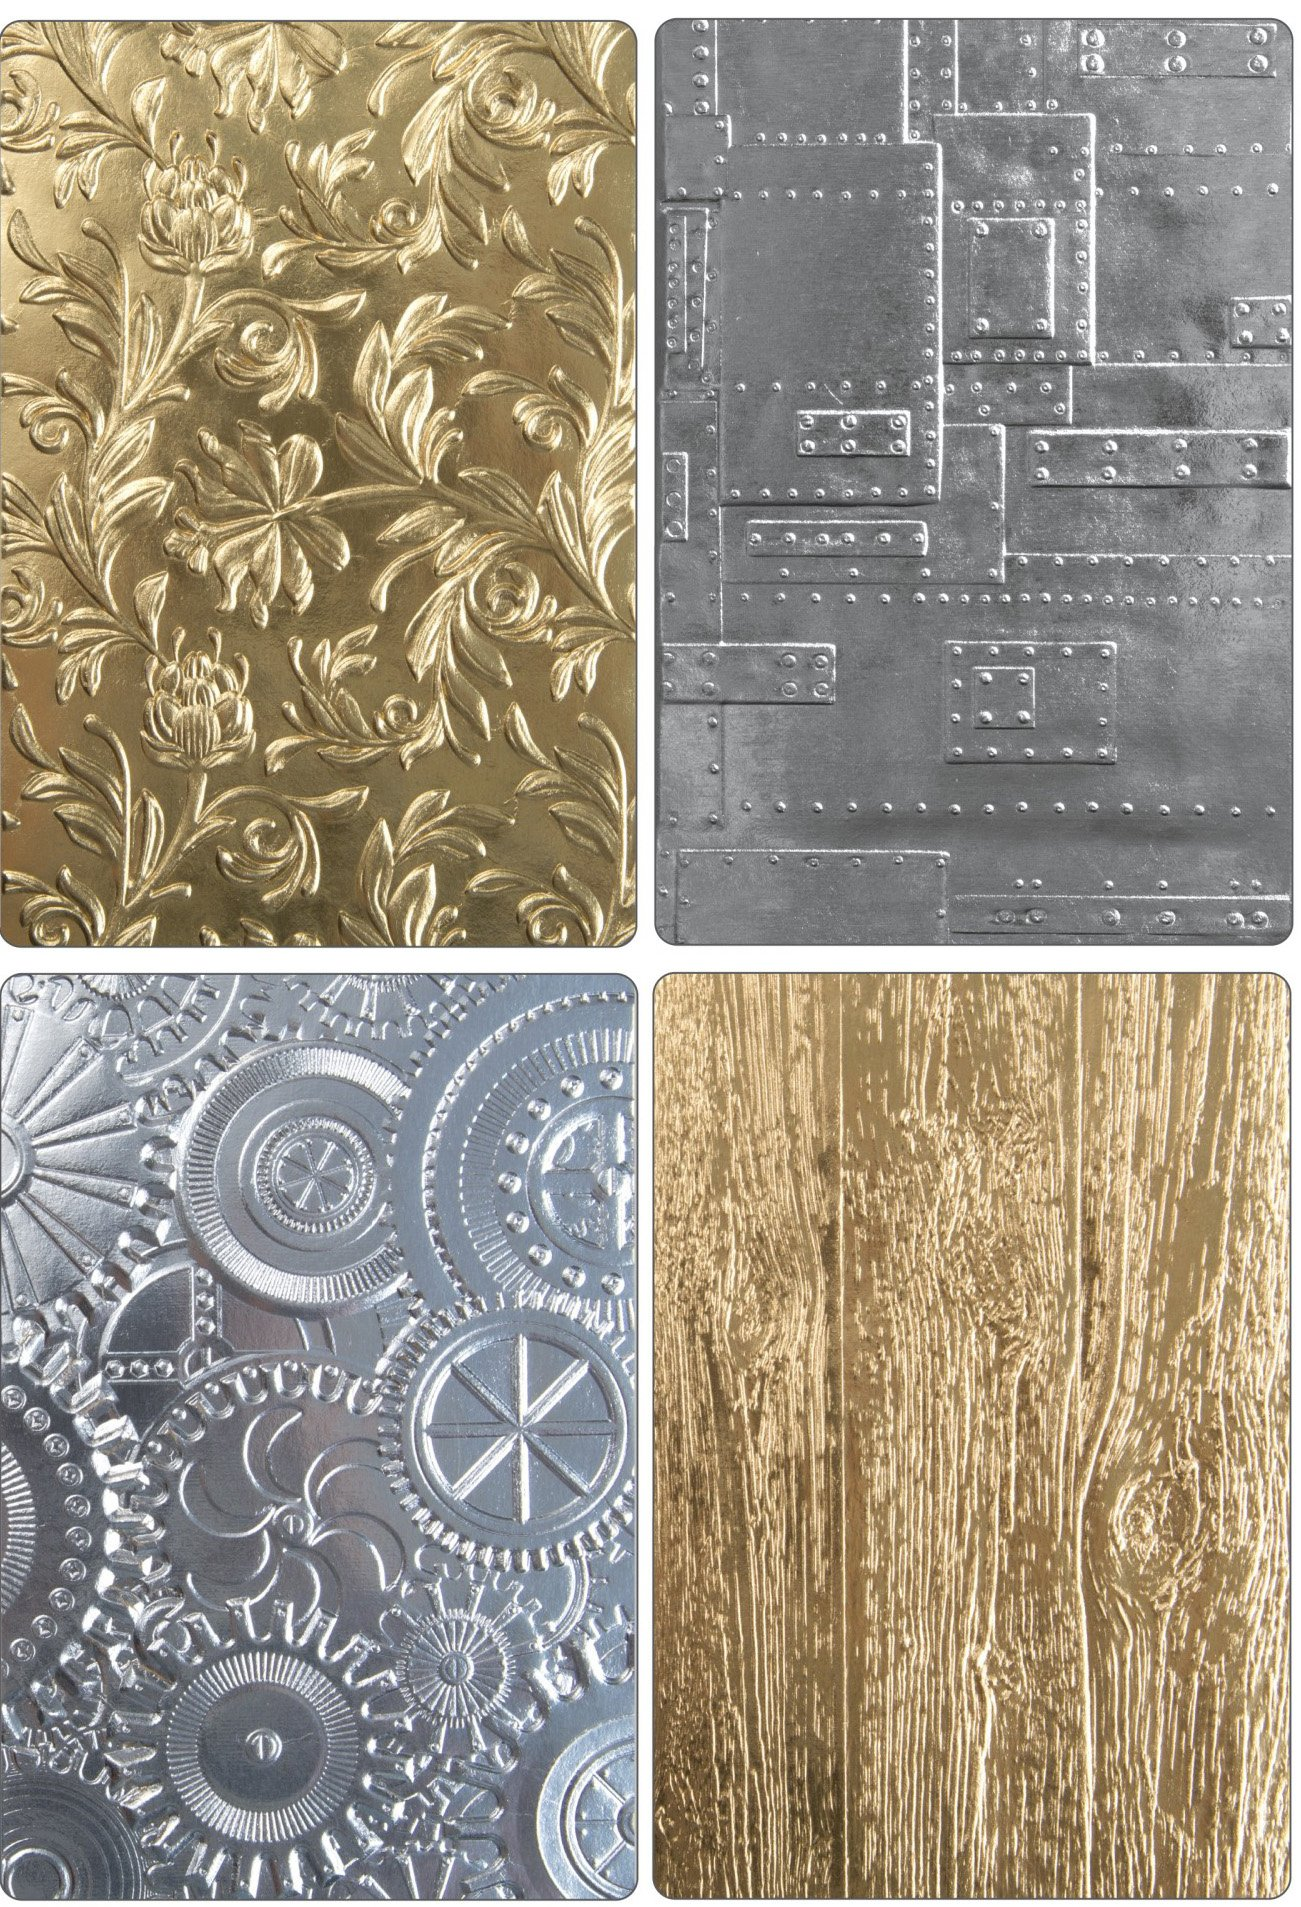 Tim Holtz Sizzix 3D Texture Fades Embossing Folders - Botanical, Lumber, Mechanics and Foundry - 4 item bundle